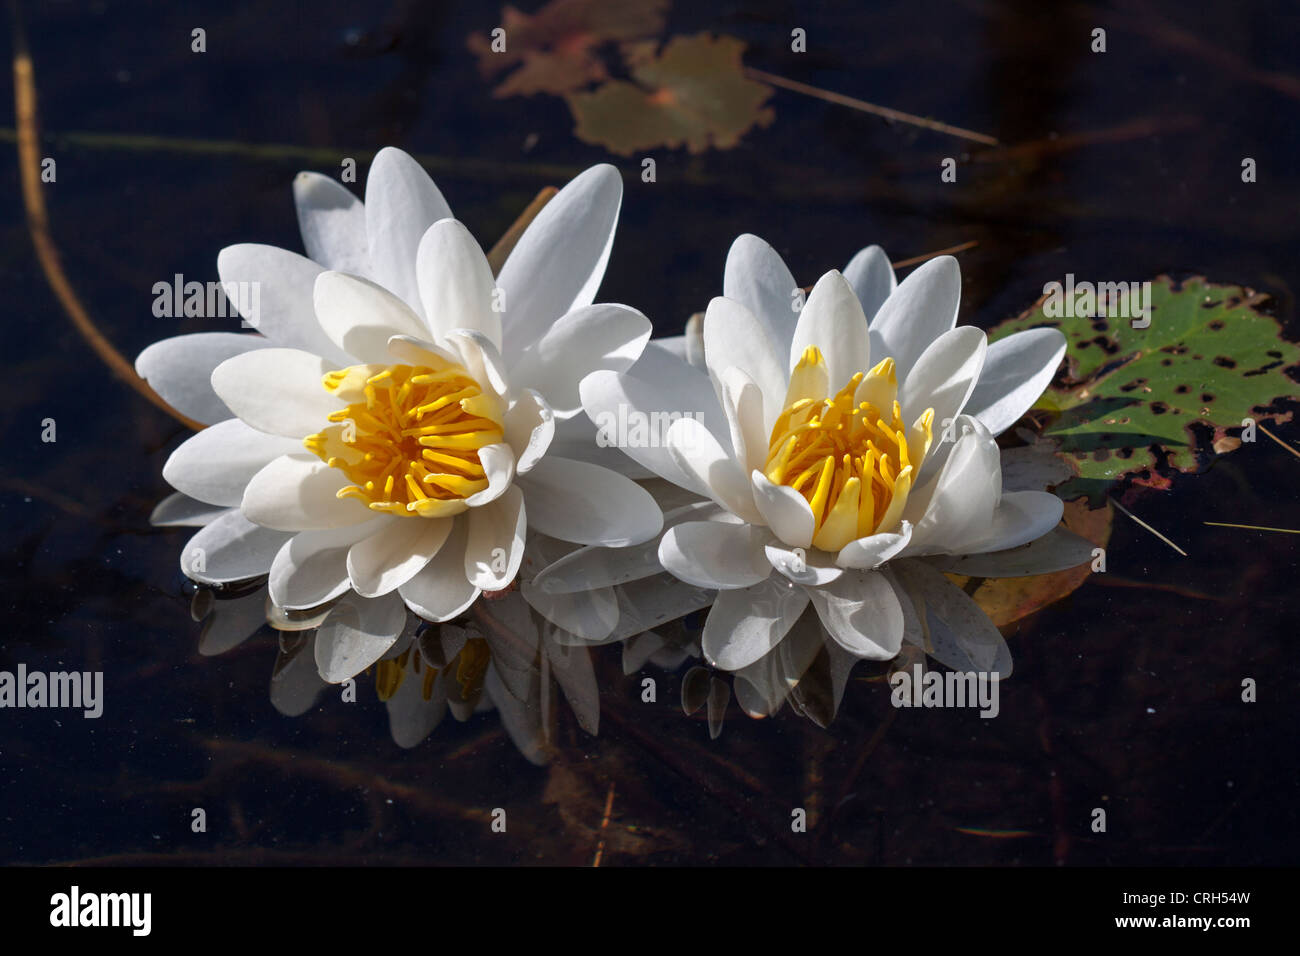 White water lilies, probably Nymphaea odorata, on French Pond, North Haverhill, NH - Stock Image